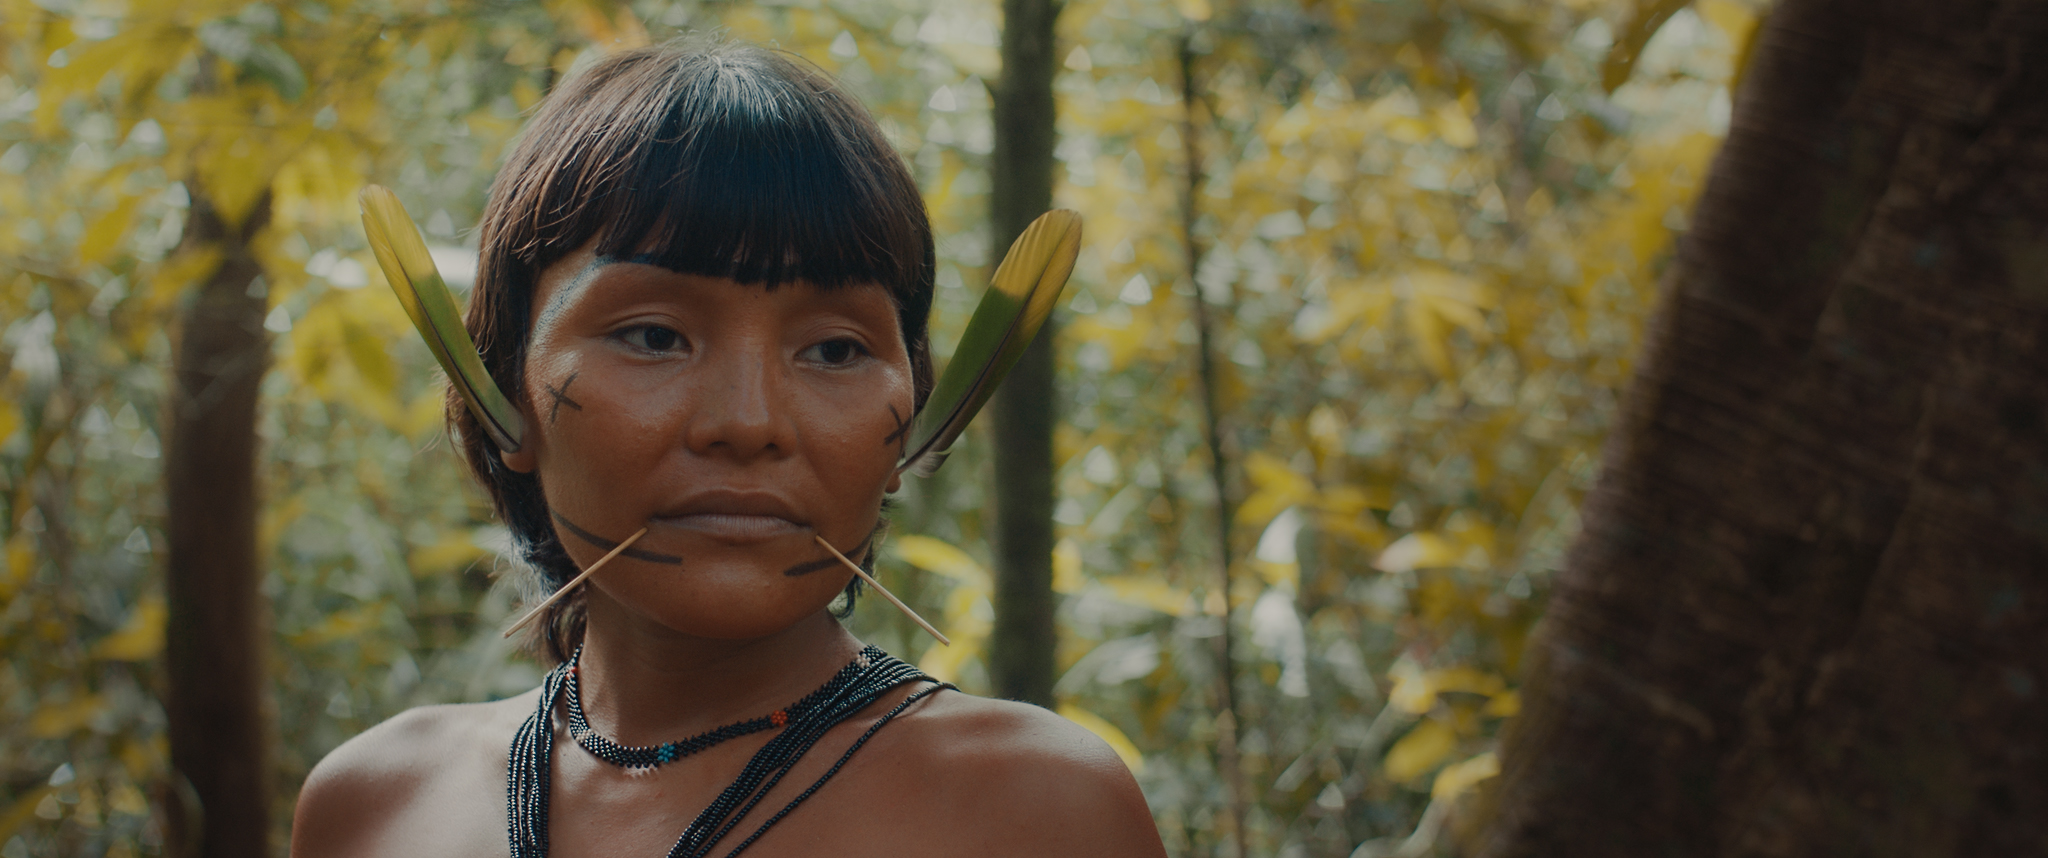 """A still from """"The Last Forest"""". A close up shot of an person looking slightly downwards. They wear a beaded necklace and additional adornments on their face including: a feather worn in each ear, a thin stick that pierce the two sides below their mouth, a black cross and line marking on each cheek and jaw. They are surrounded by a forest of trees with yellow leaves."""